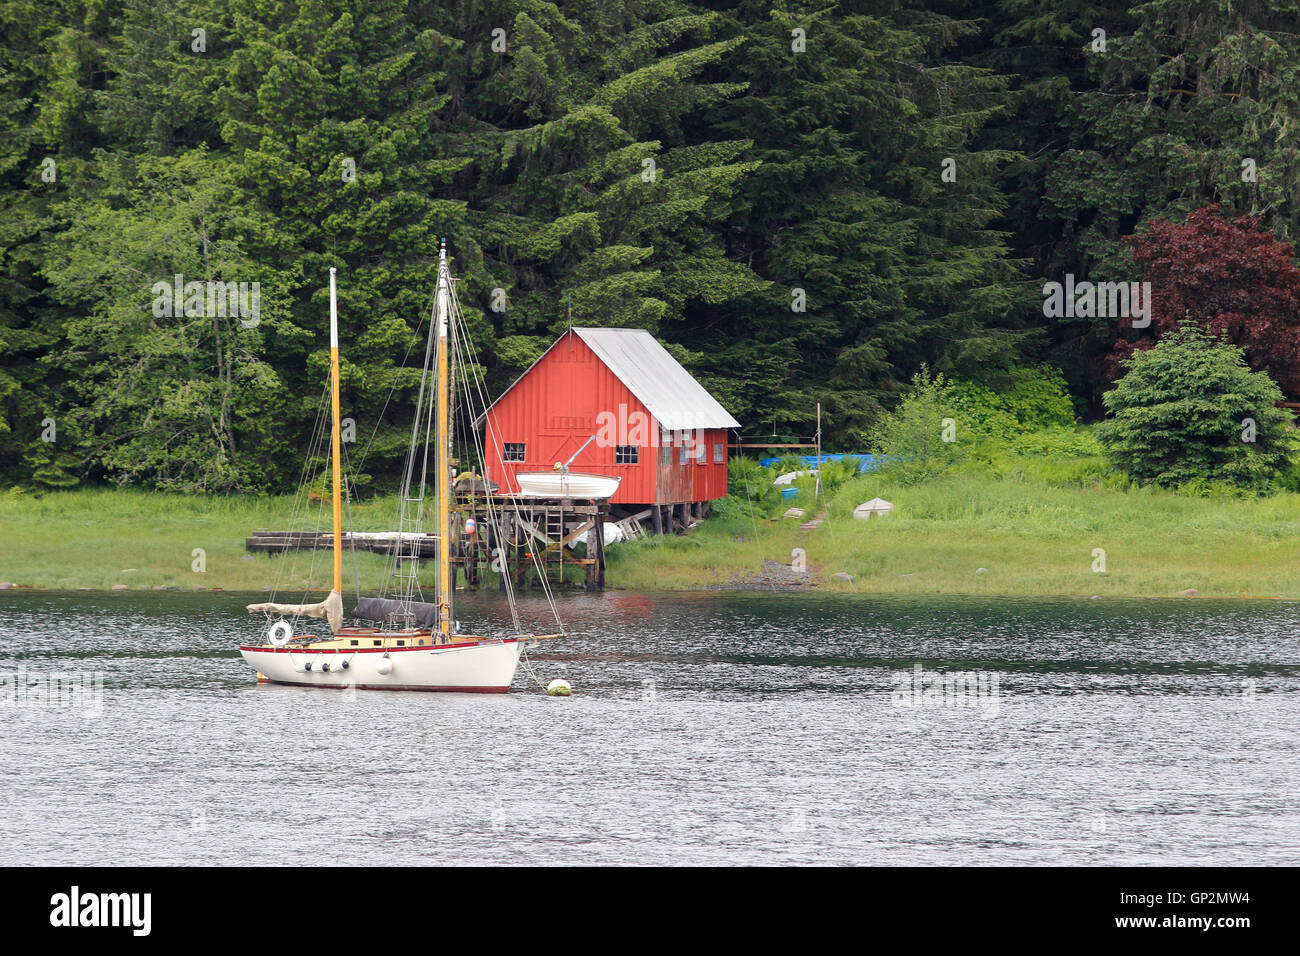 Sailboat ketch boathouse fishing camp near Petersburg 'Little Norway' fishing village Mitkof Island Inside - Stock Image